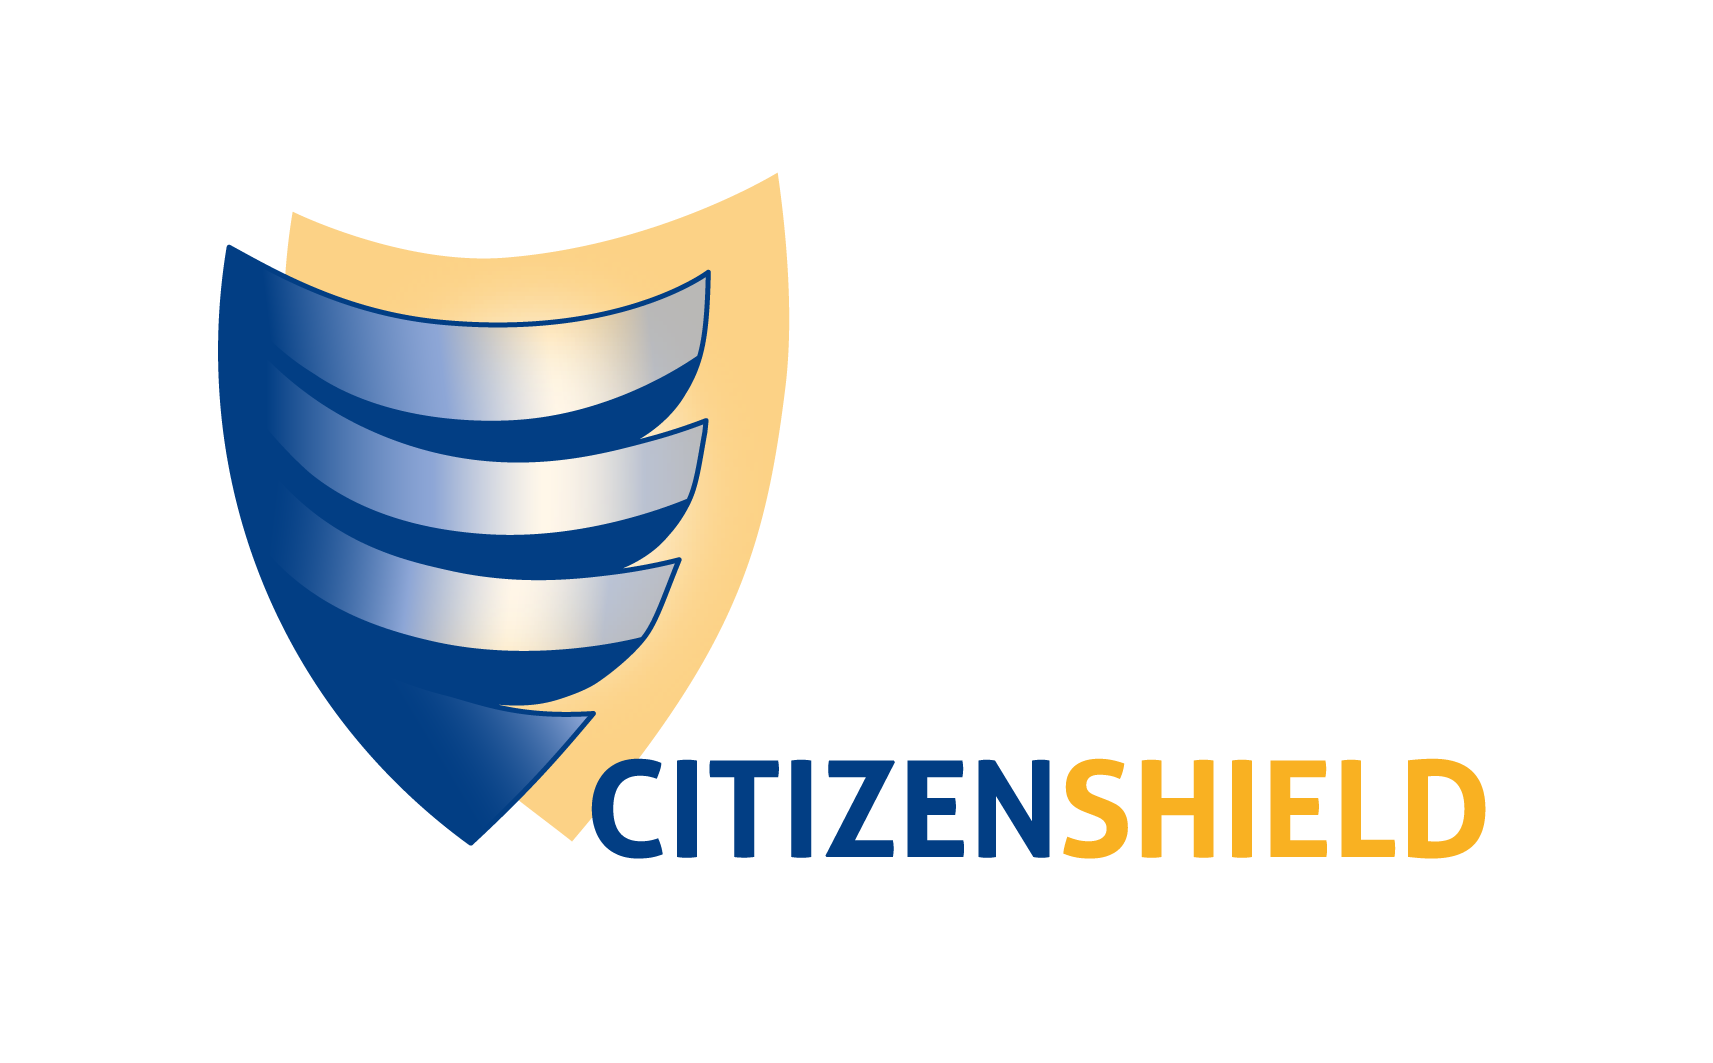 CitizenShield